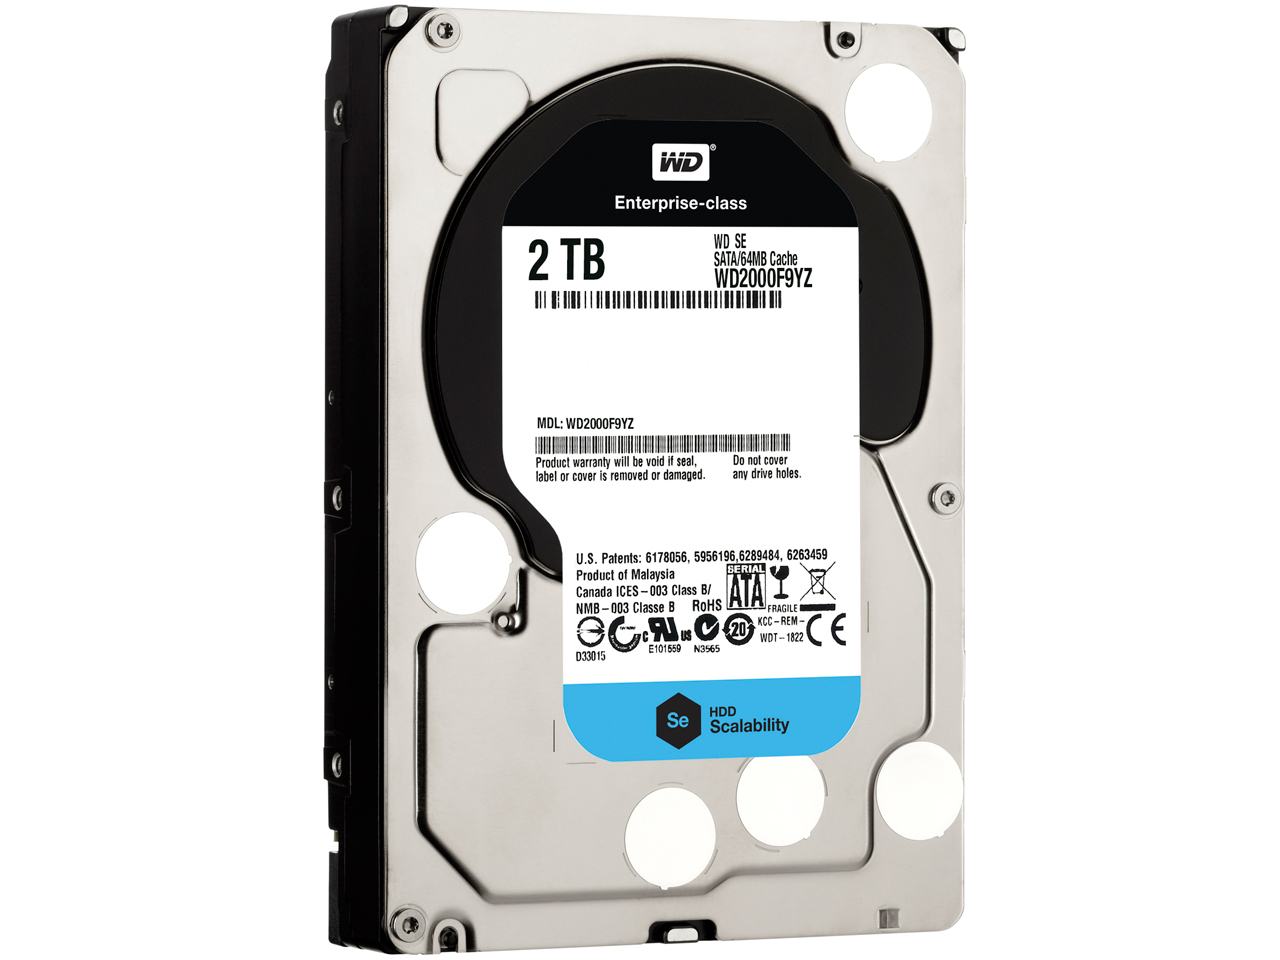 WD2000F9YZ